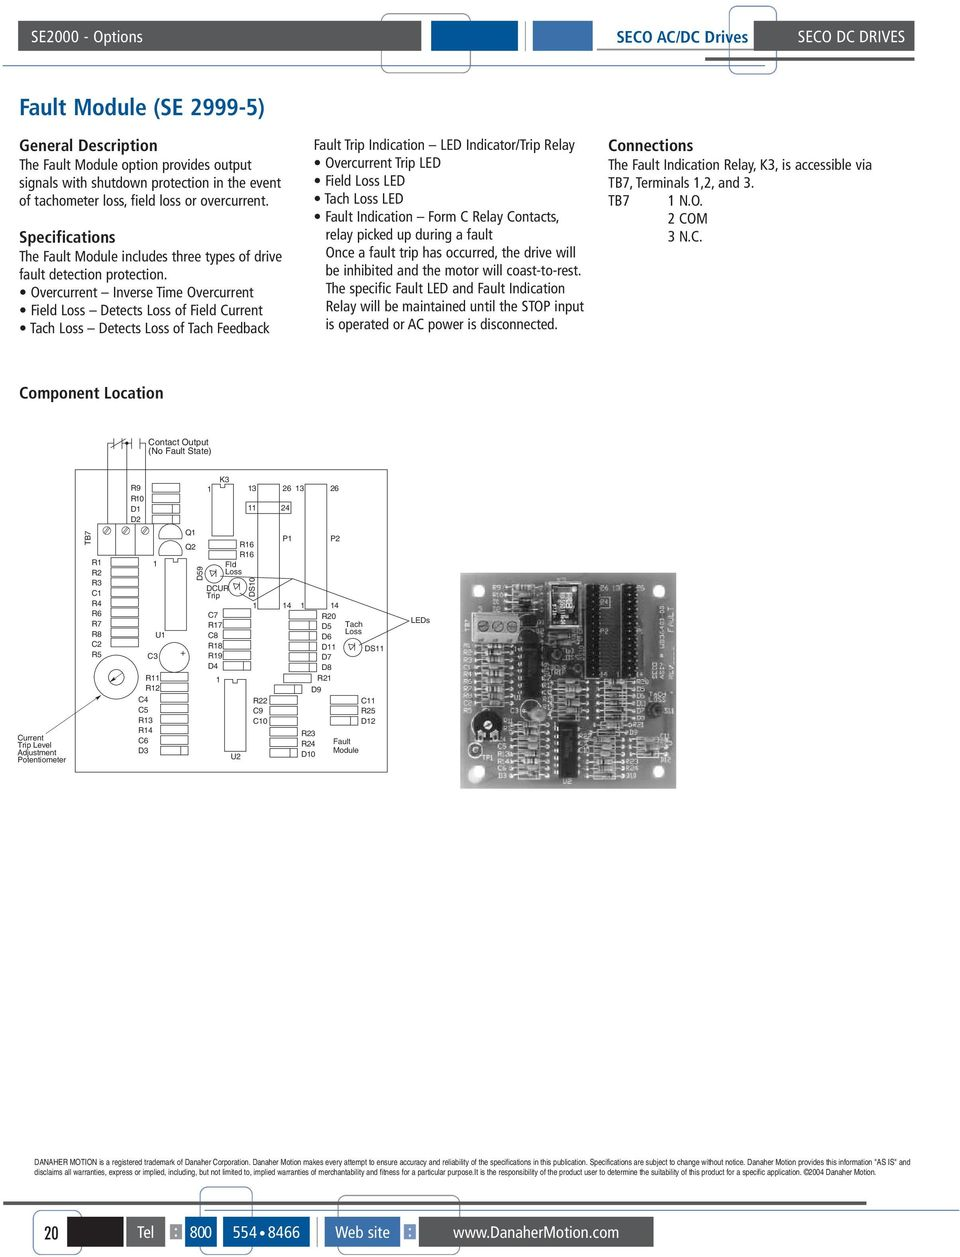 medium resolution of august seco dc drives table of contents pdf kbic 120 schematic kbic 120 wiring diagram